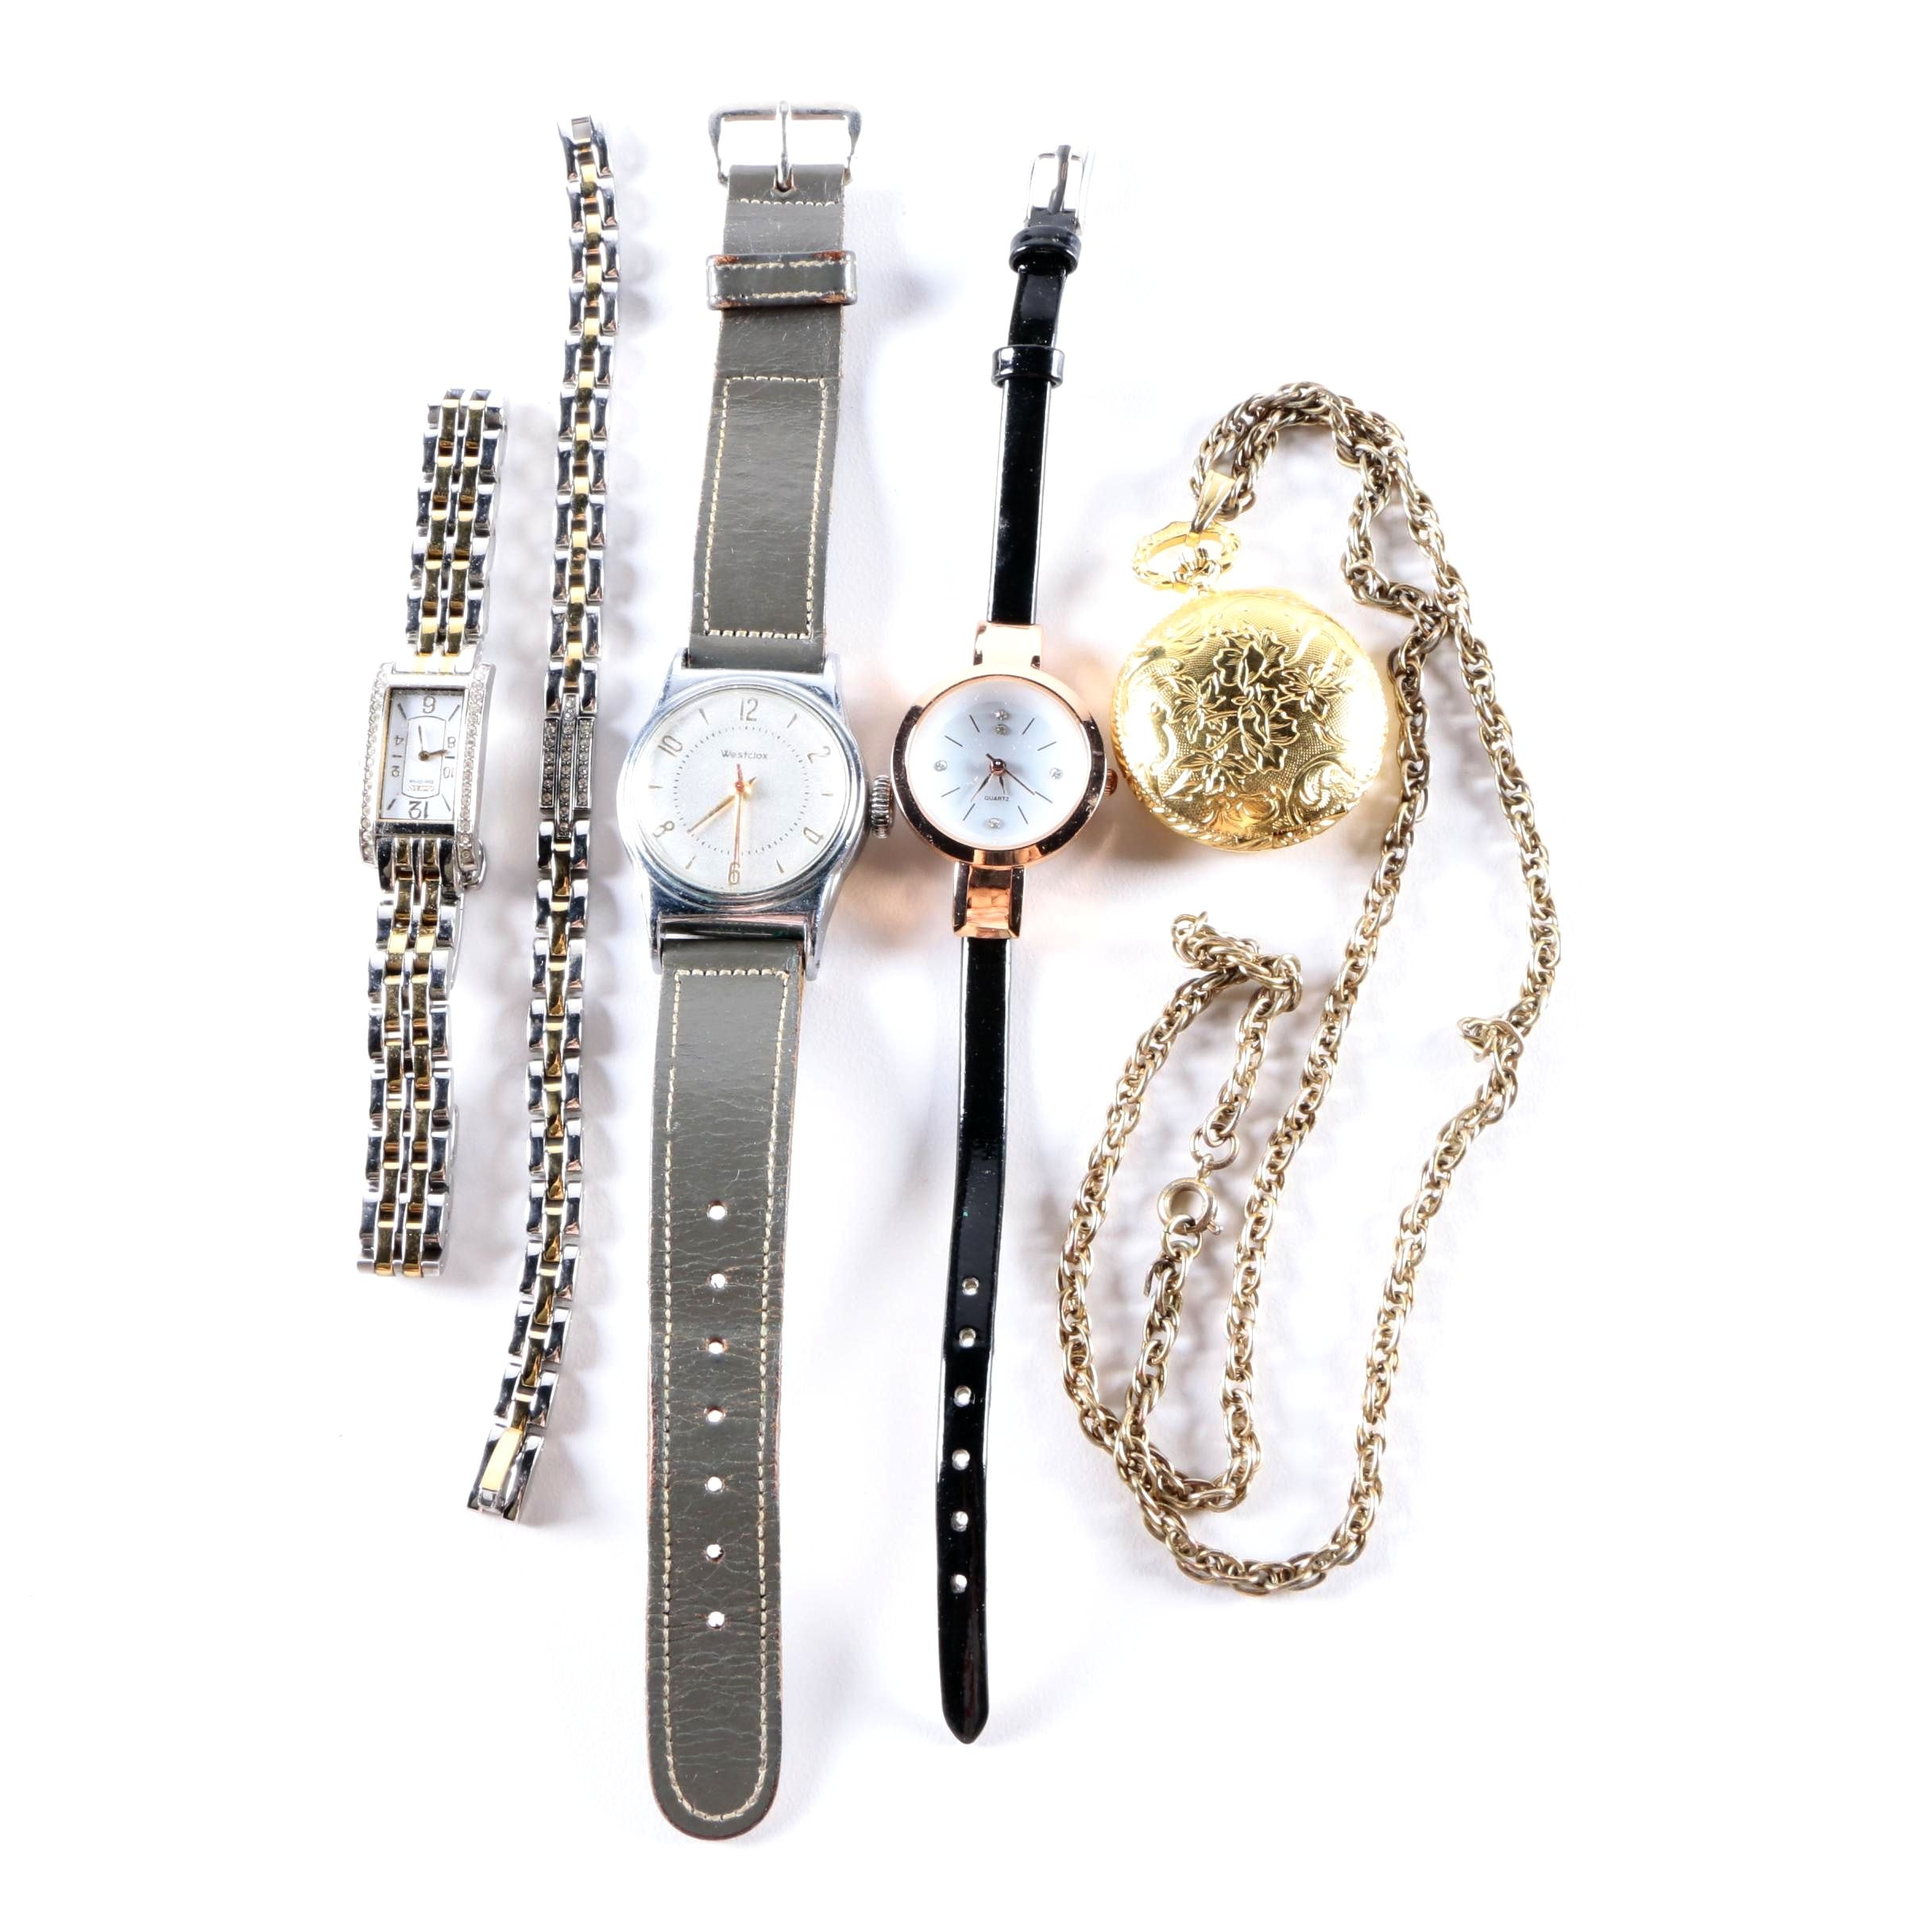 Citizen Two-Tone Wristwatch and Bracelet with Sutton Pocket Watch and Others